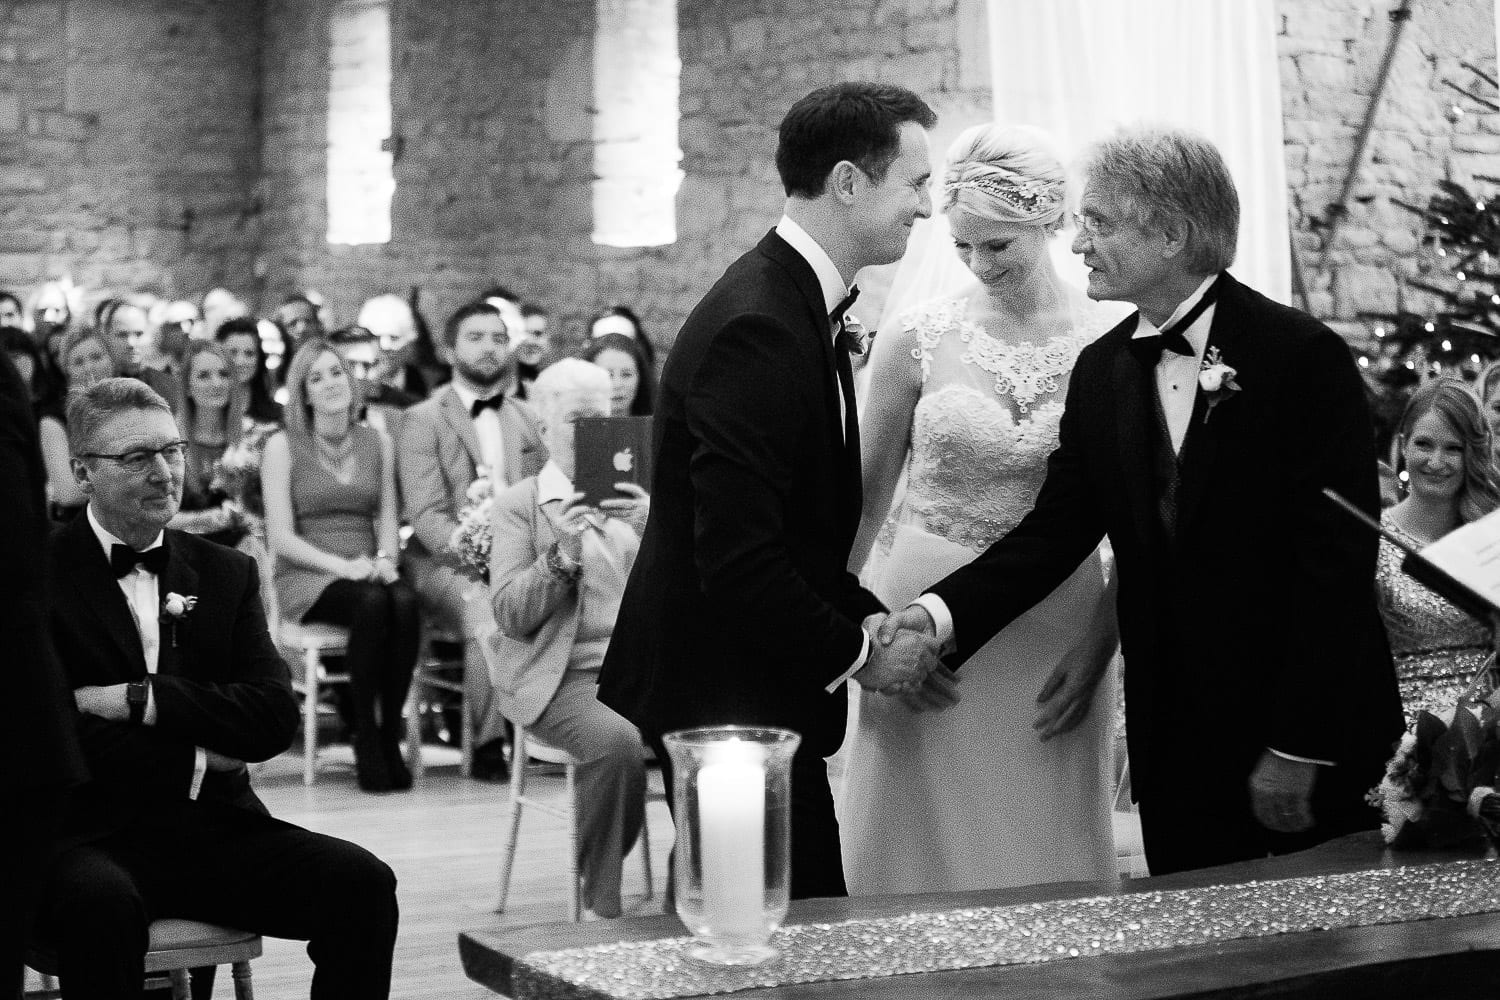 Father of the bride and groom shaking hands